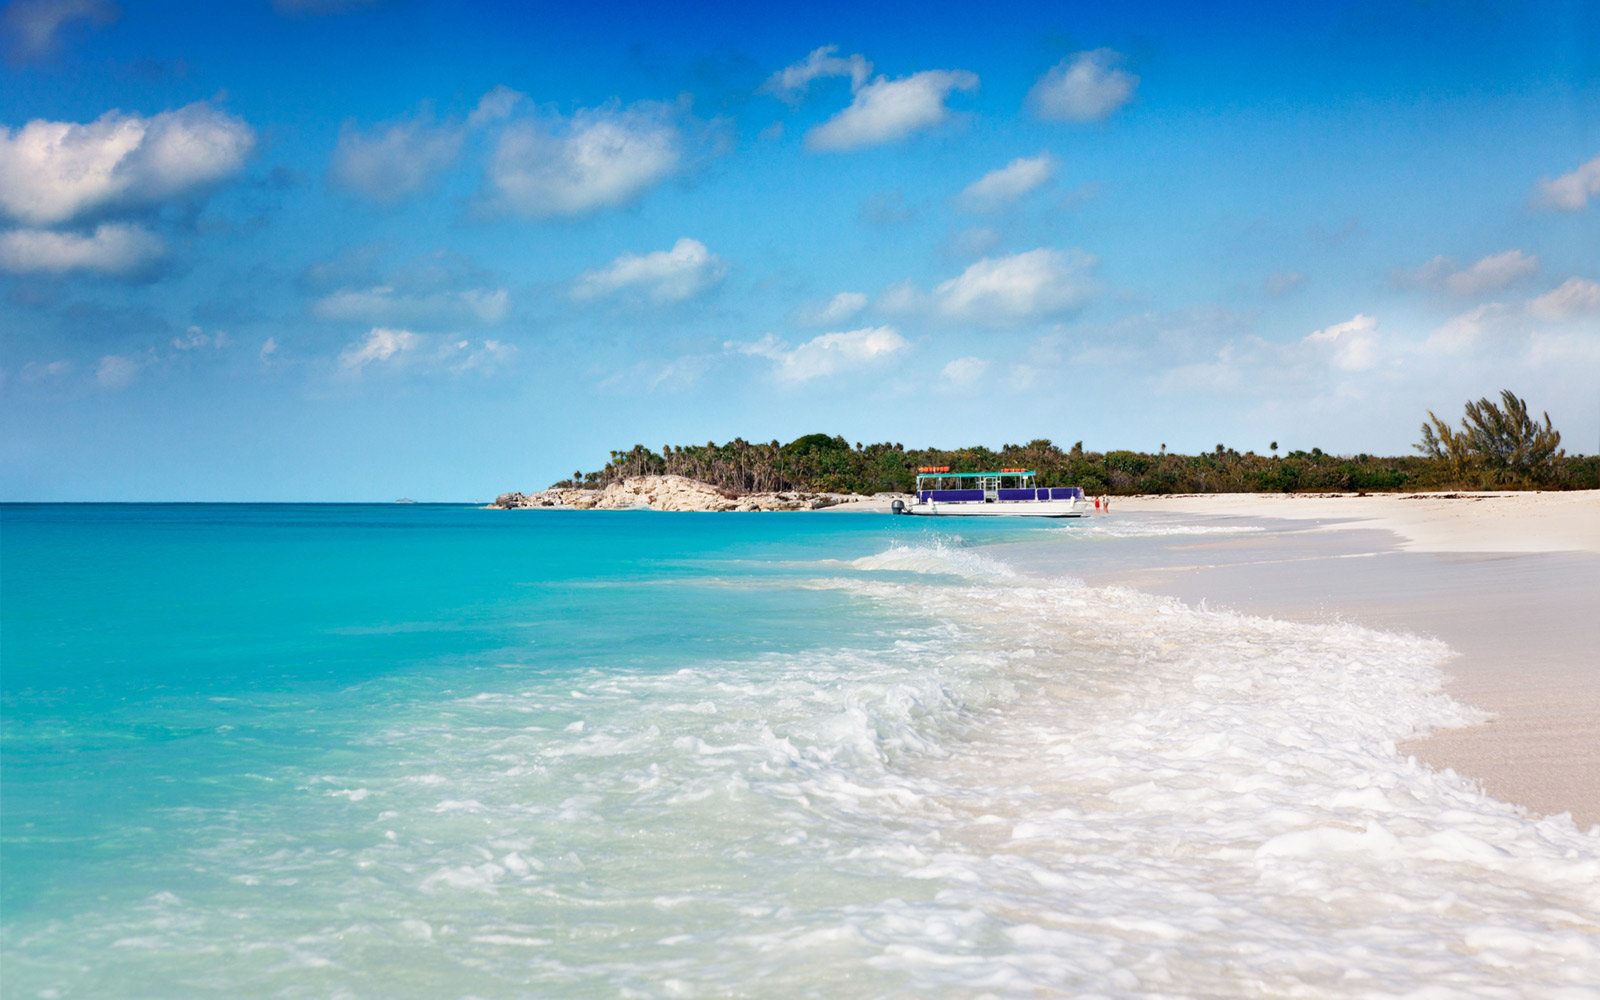 9. Turks and Caicos